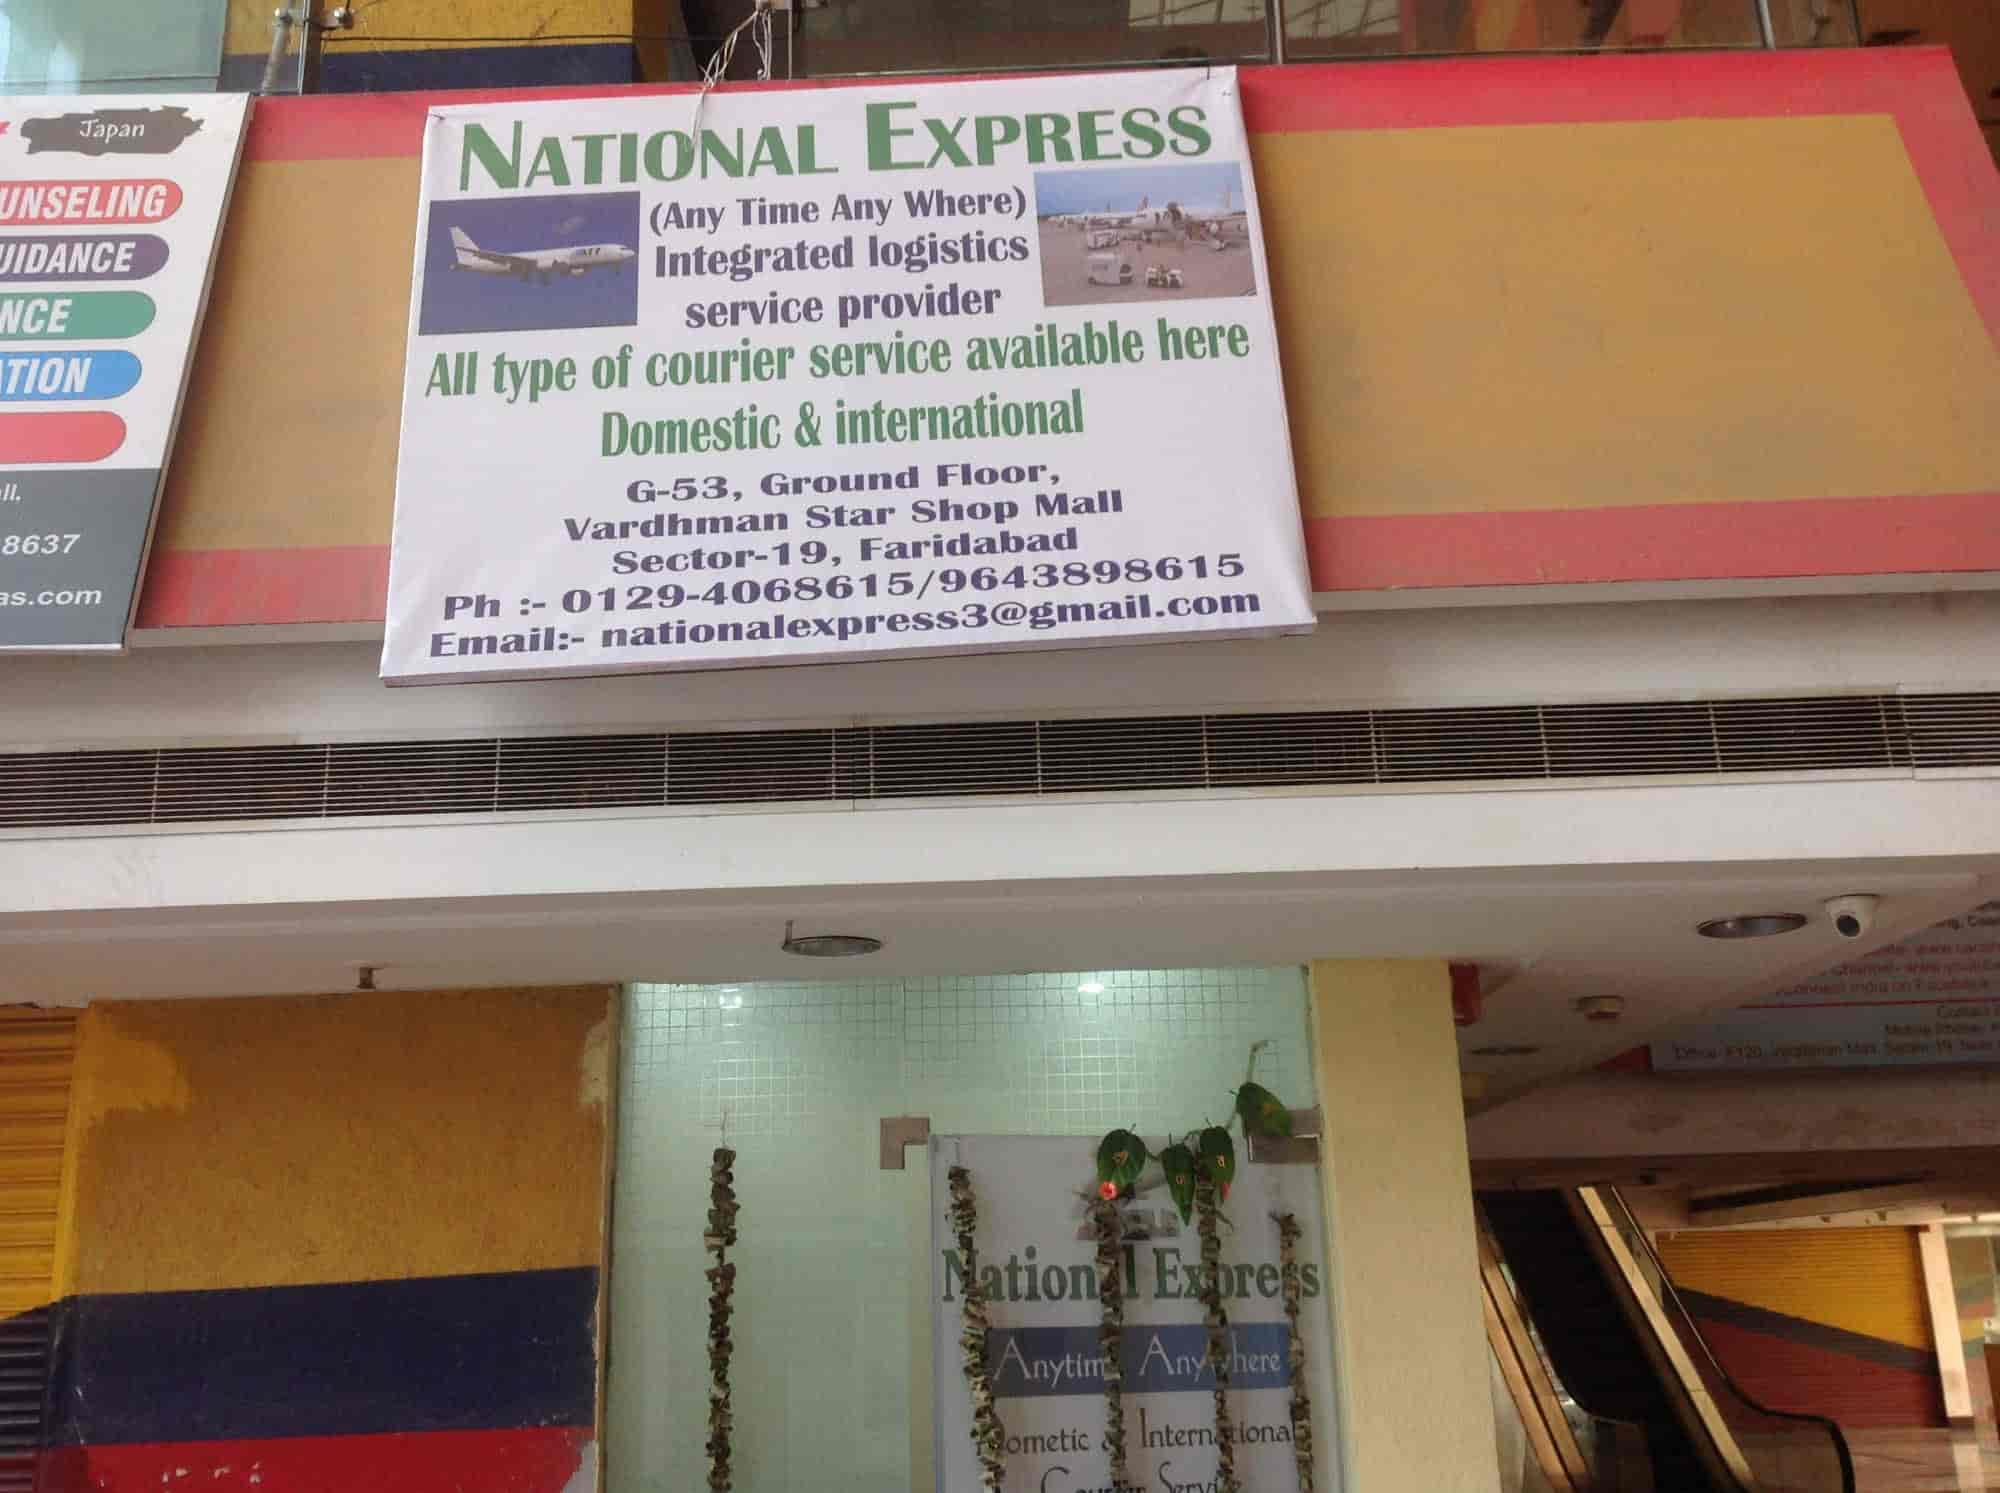 National Express, NIT - International Courier Services in